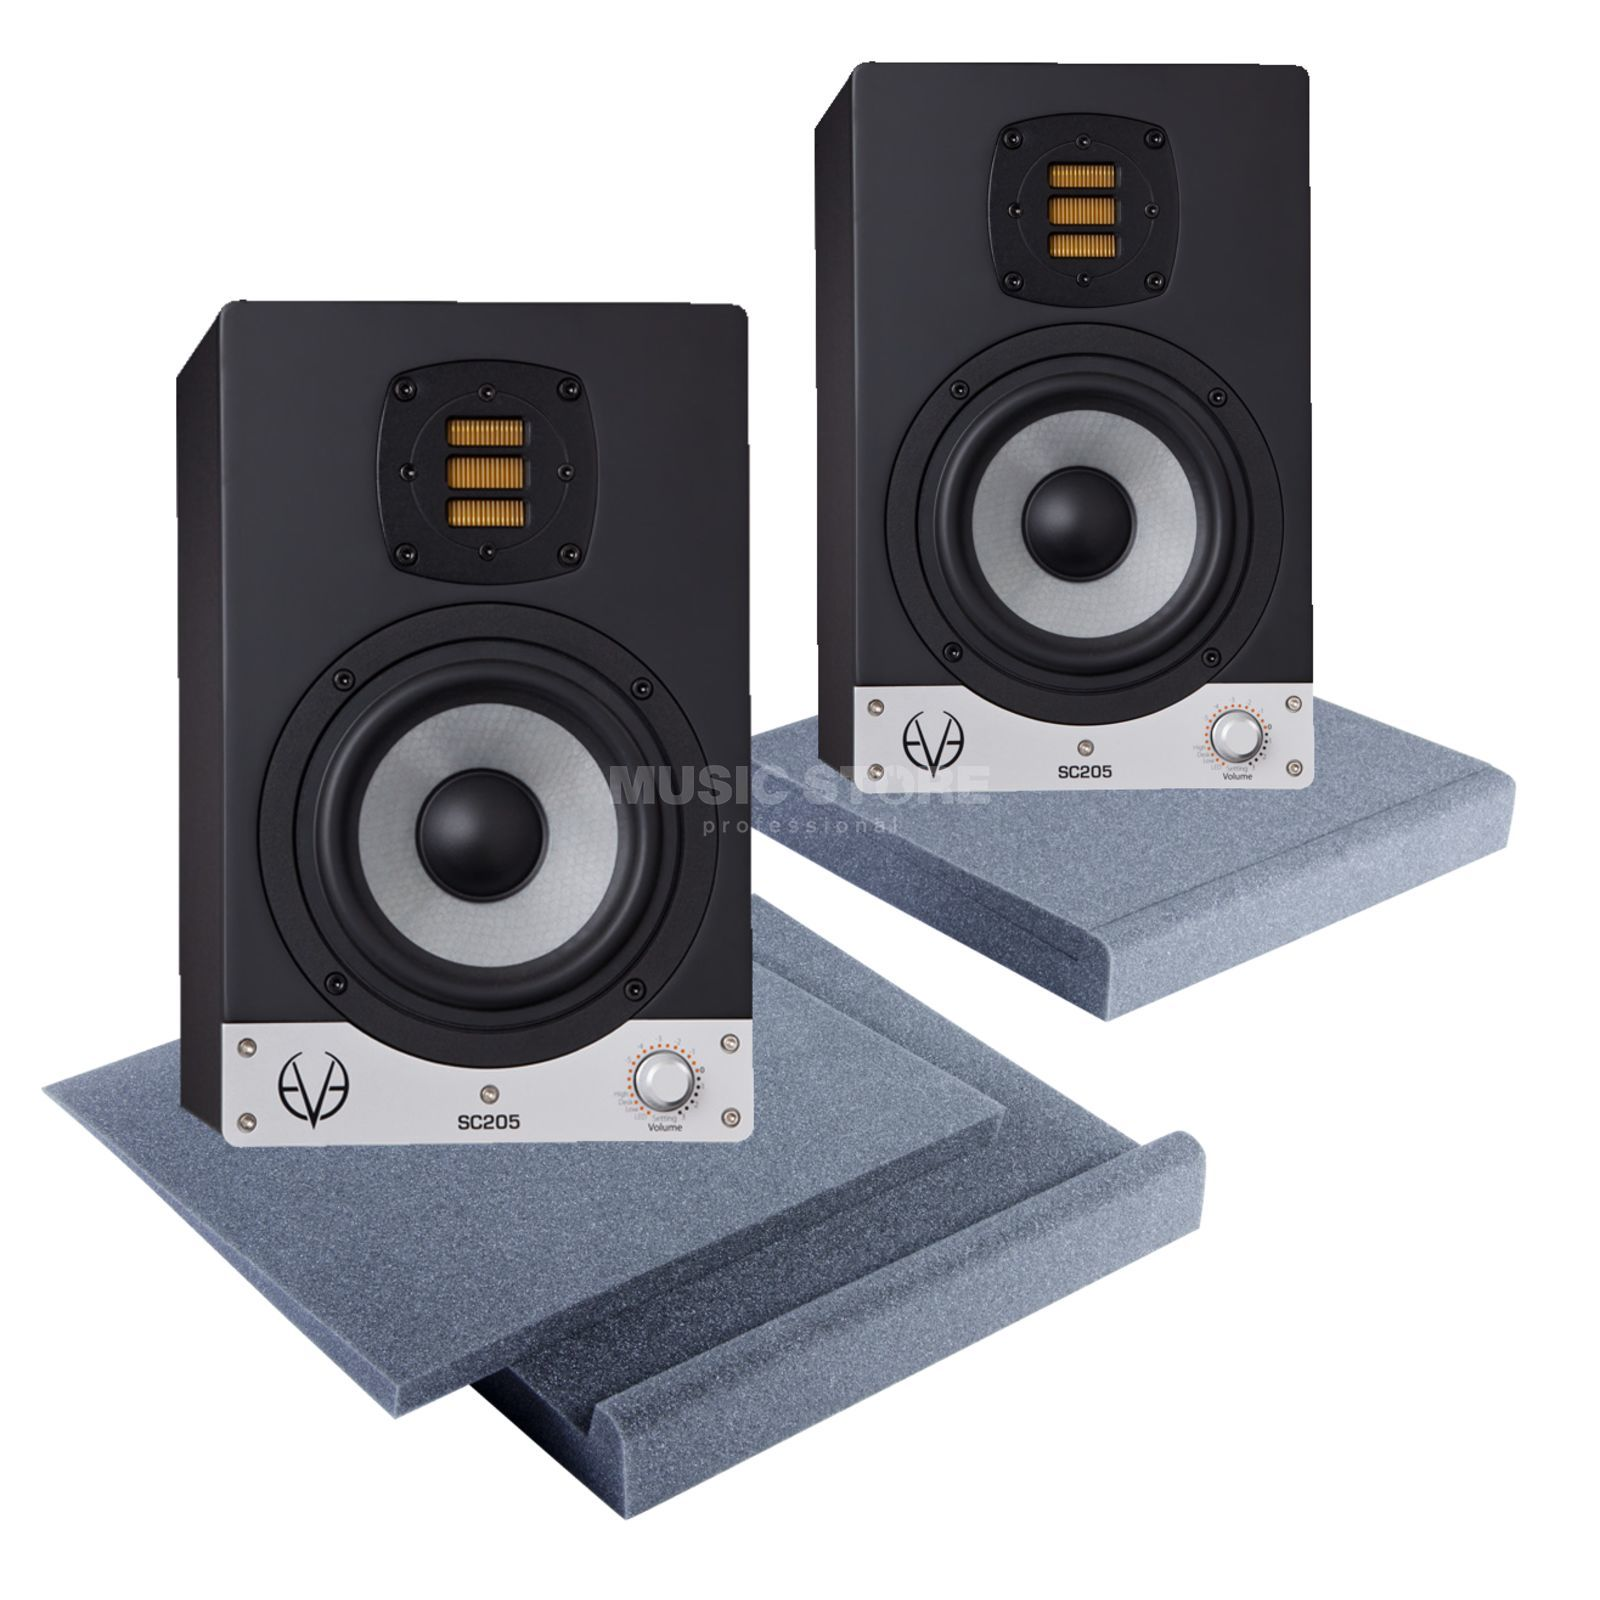 EVE Audio SC205 + SpeakerPad Set M - Set Product Image